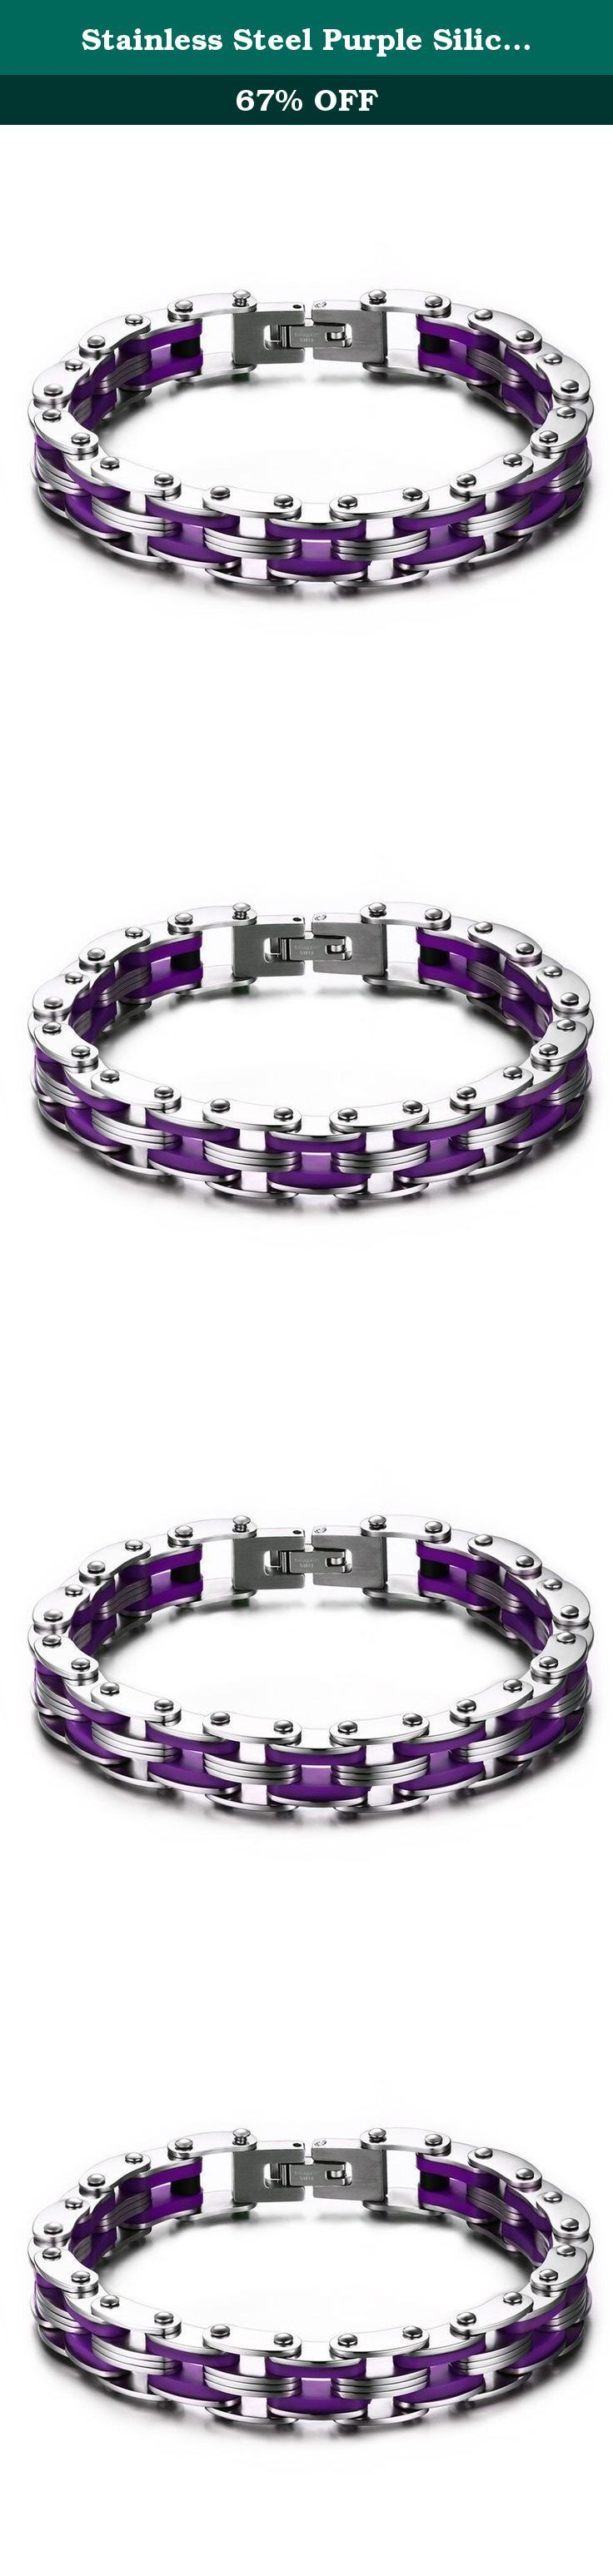 Stainless Steel Purple Silicone Men's Bicycle Bike Chain Bracelet for Men,Bold and Chunky. The Vnox Discover the Vnox of elaborate and fashion jewelry. The high-quality jewelry featured in the Vnox offers great values at affordable Price, they mainly made of high quality Stainless Steel,Tungsten,Alloy and Leather. Find a special gift for a loved one or a beautiful piece that complements your personal style with jewelry from the Vnox. Stainless Steel Stainless steel has increasingly grown…